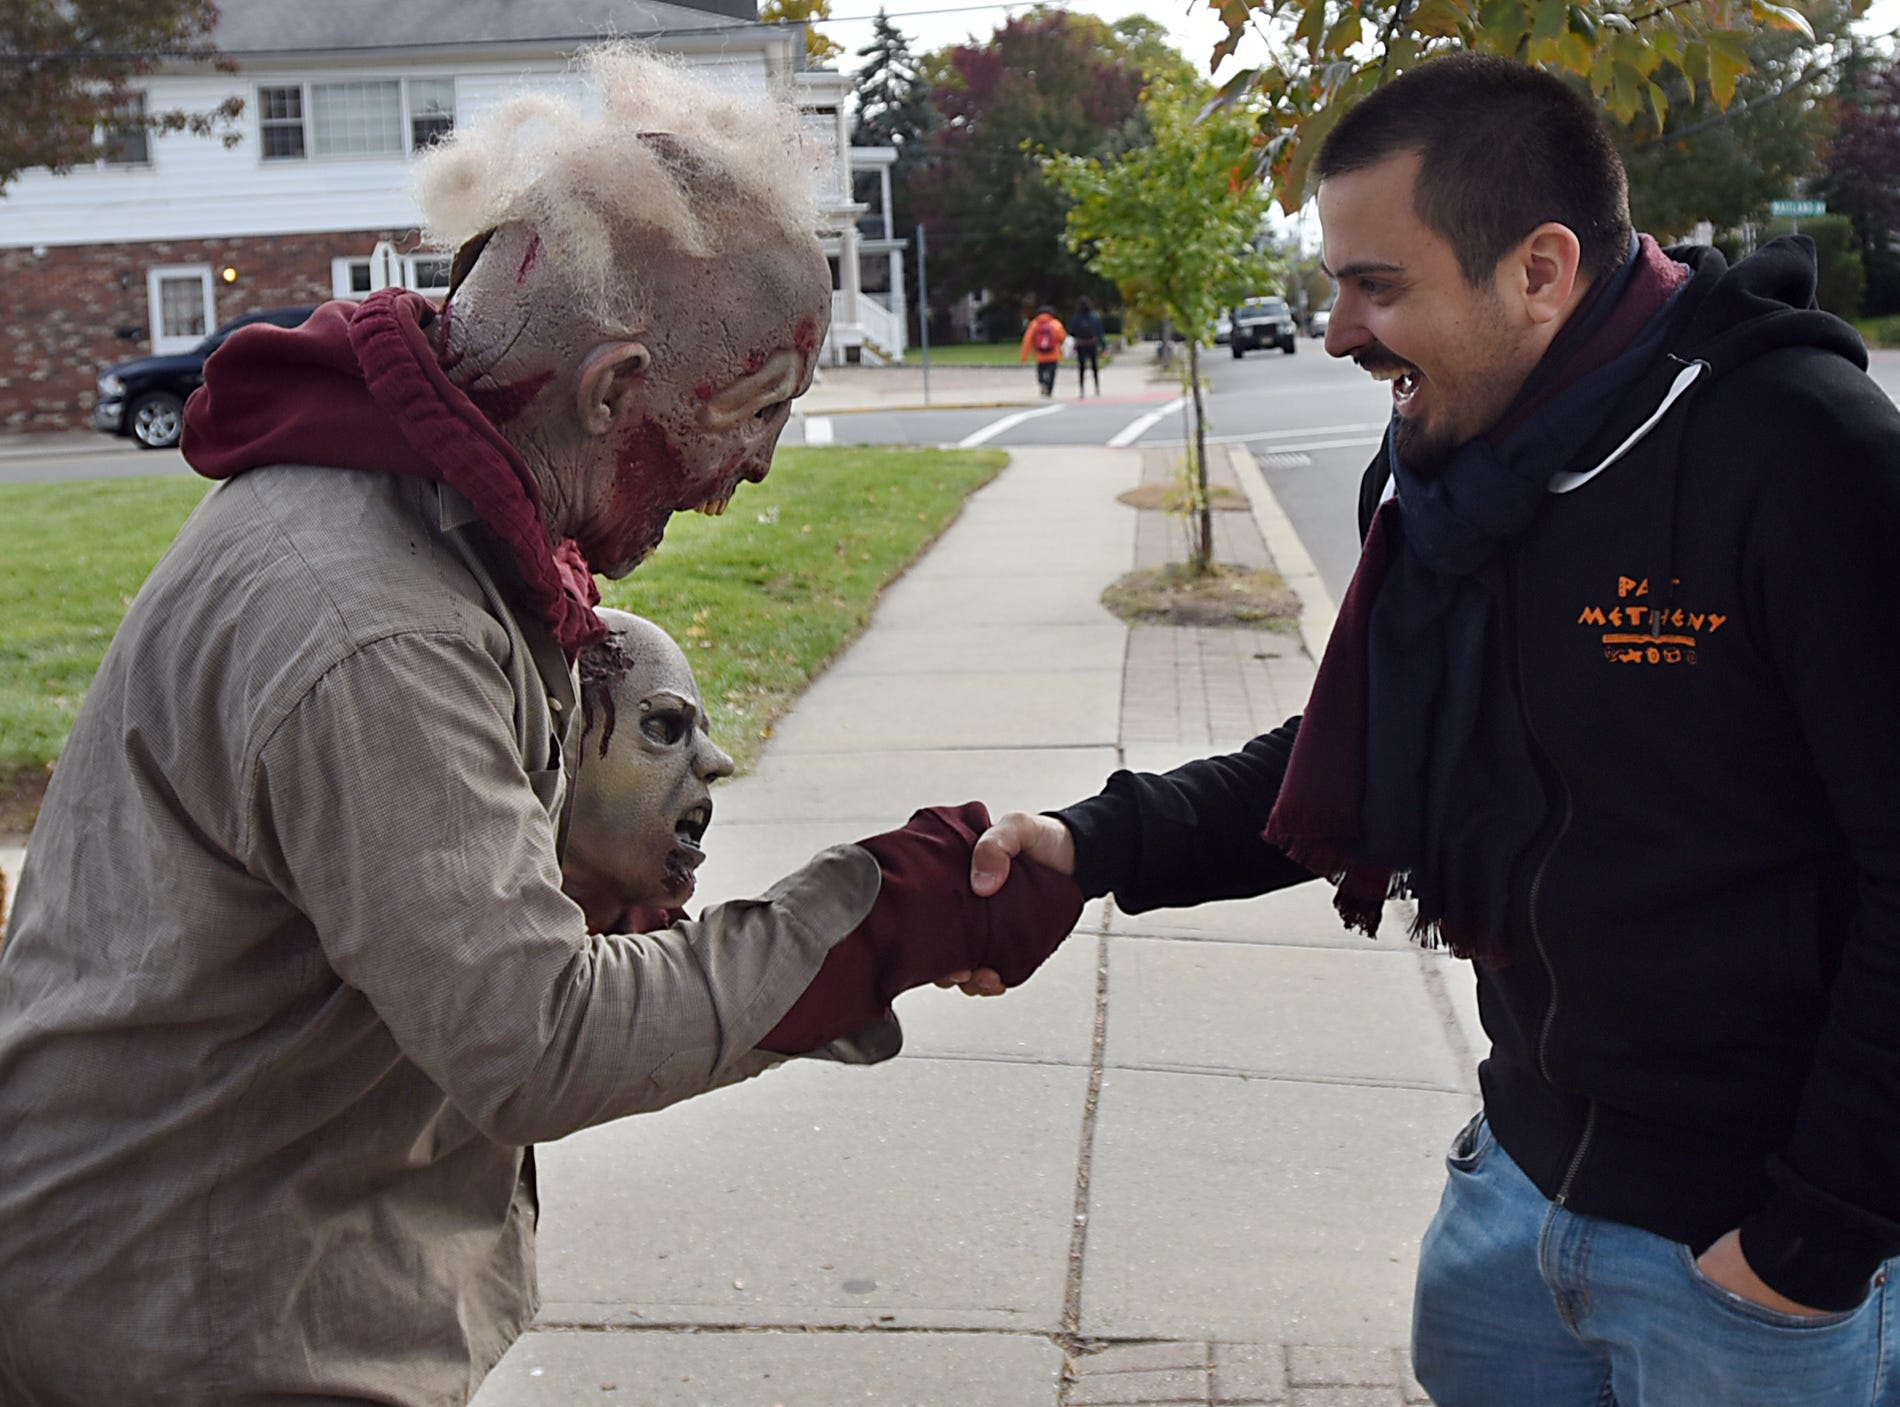 Antonio Rodrigues goes all out for Halloween decorating his home with hundreds of spooky creatures. Dressed as a zombie Antonio Rodrigues shakes the hand of Ryan Sebastian Nigro in Hawthorne on Friday October 26, 2018.